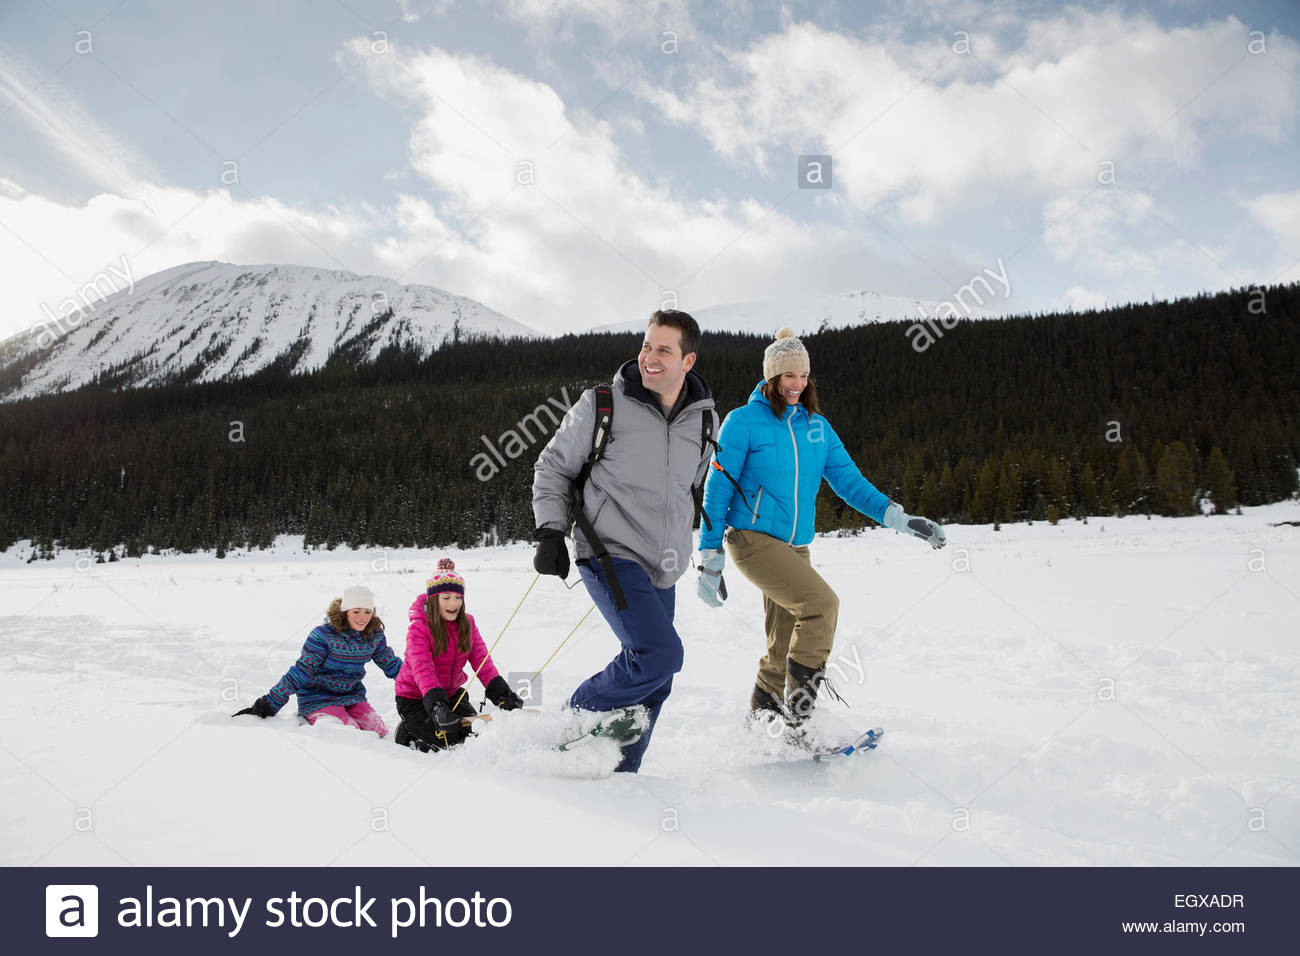 Family sledding in snowy field below mountains - Stock Image